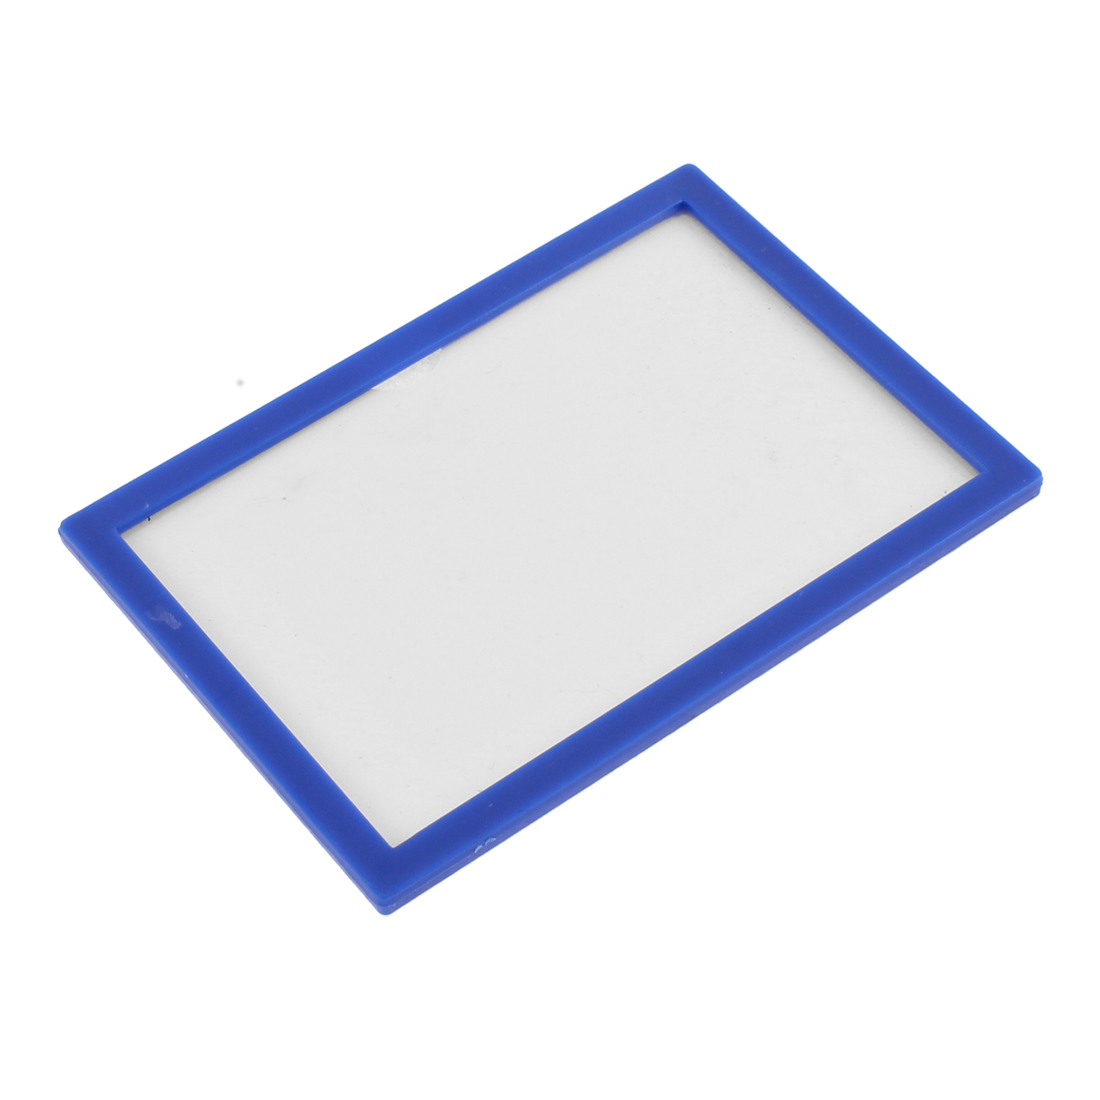 Blue Plastic Frame ID Card Holder Display Case Pouch Cover